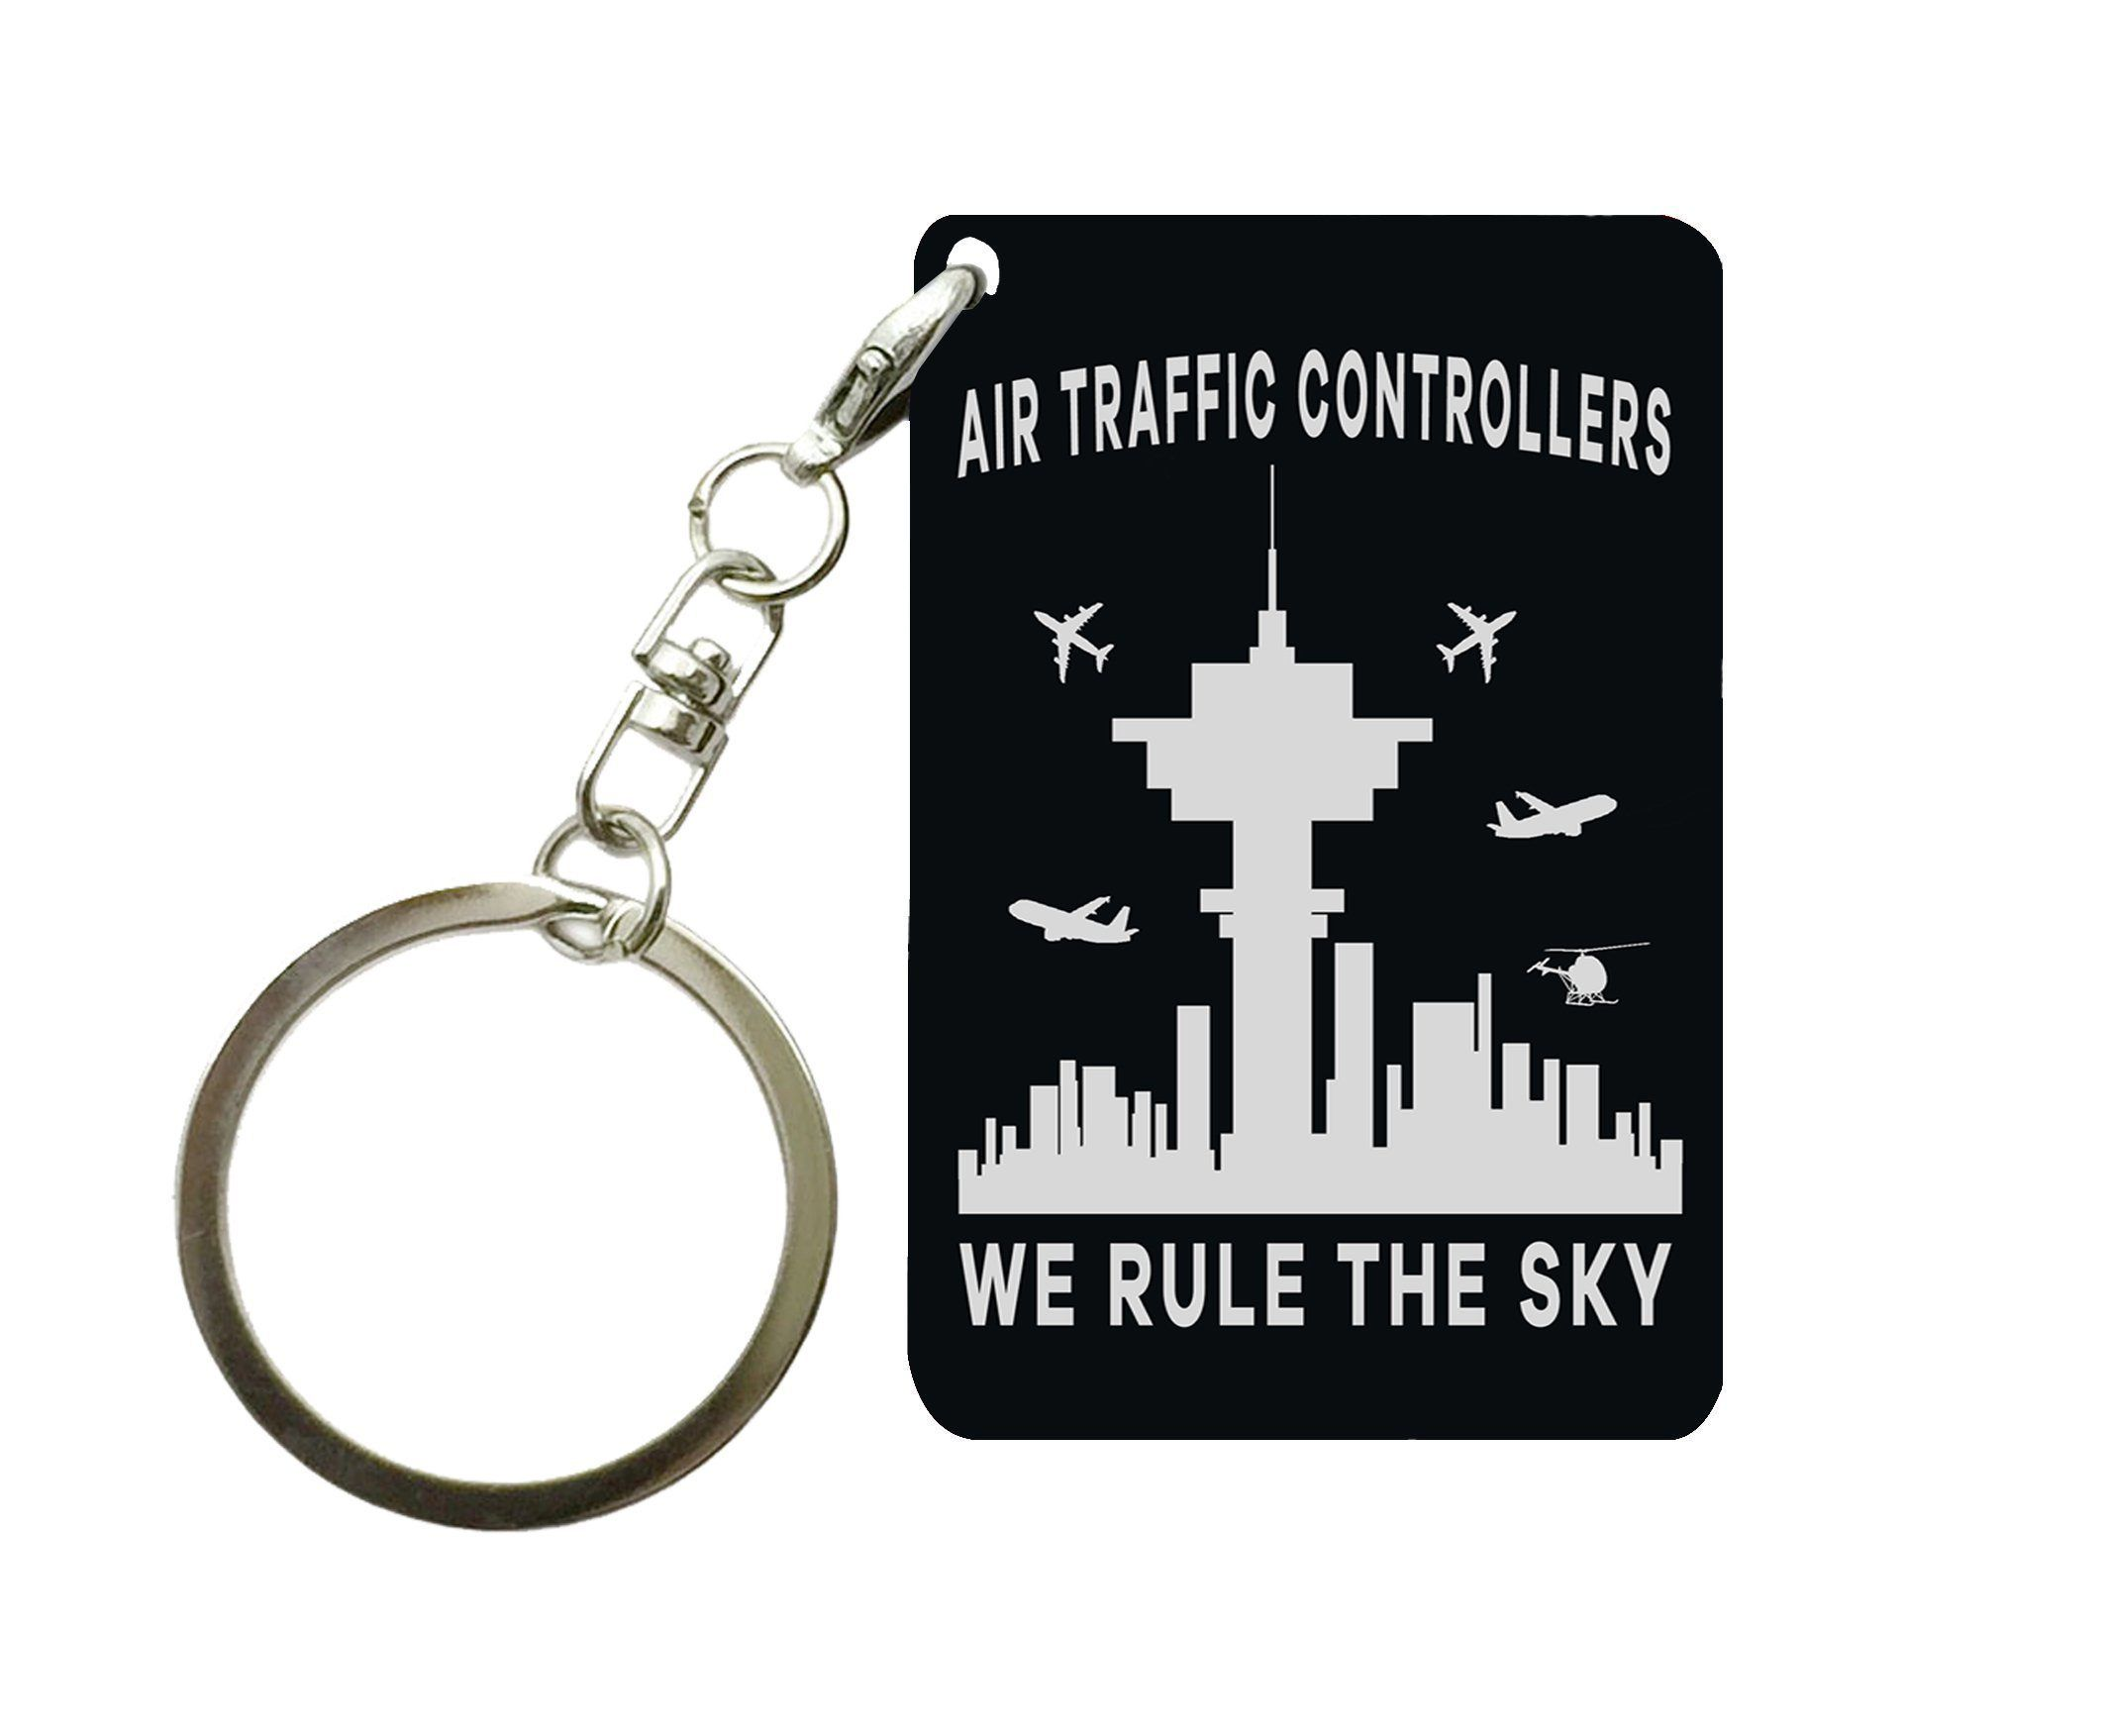 Air Traffic Controllers We Rule The Sky Designed Key